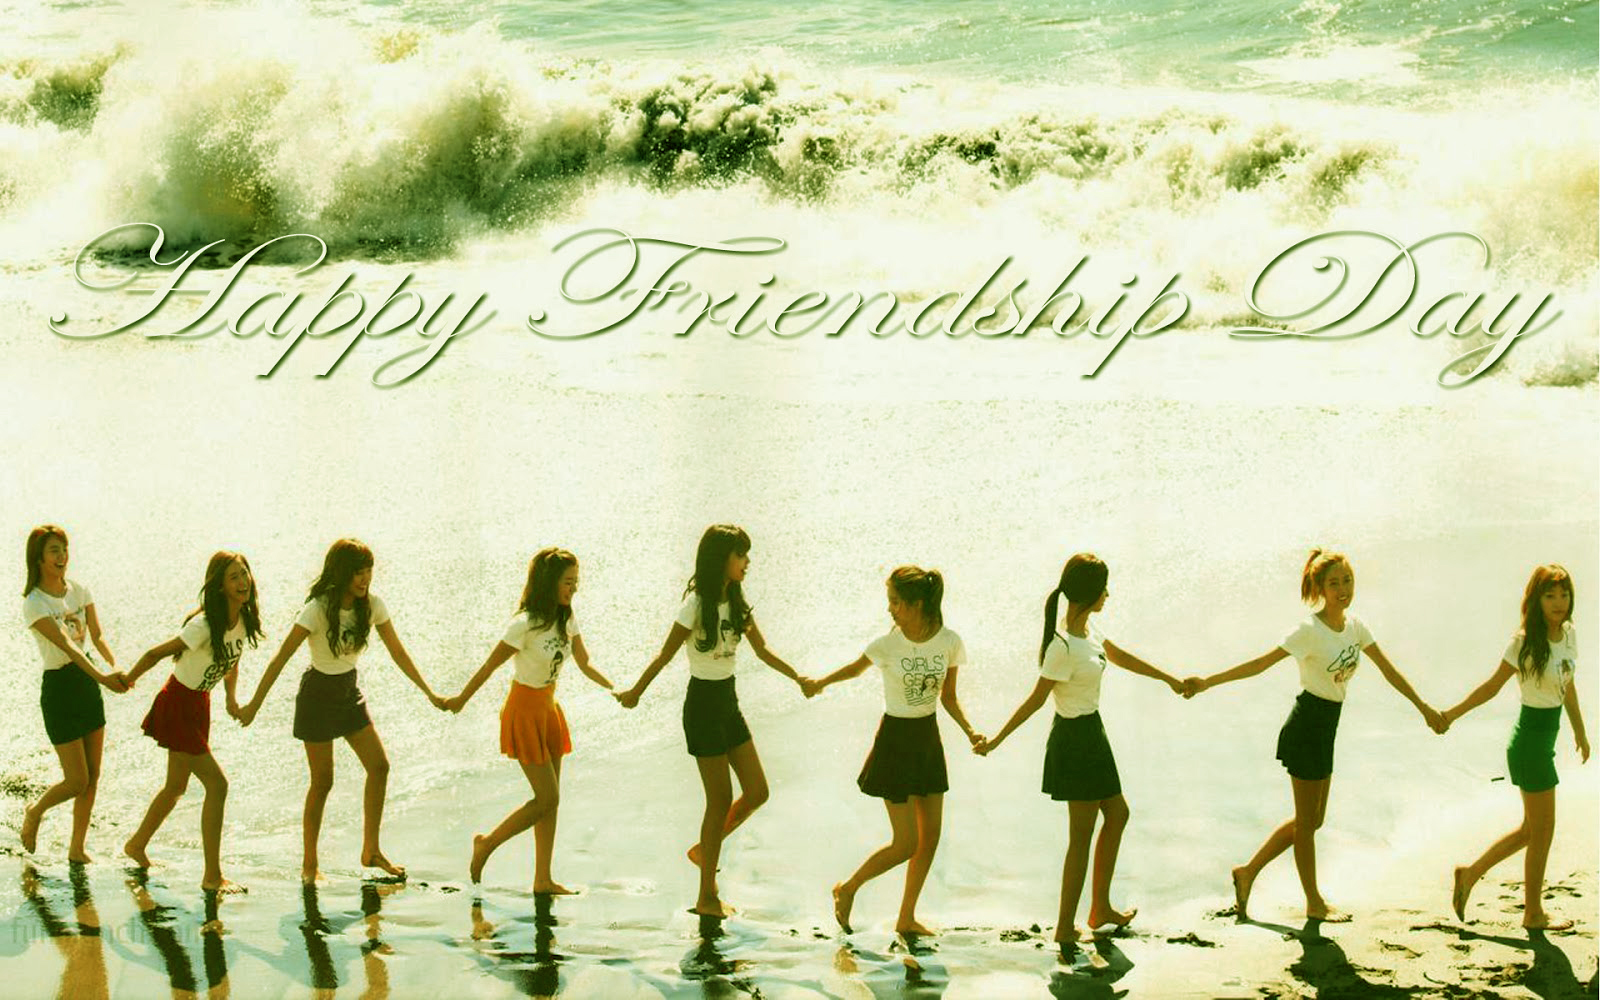 Wallpaper download friendship day - Friendship Day Pics Hd Images Wallpapers And Photos Free Download